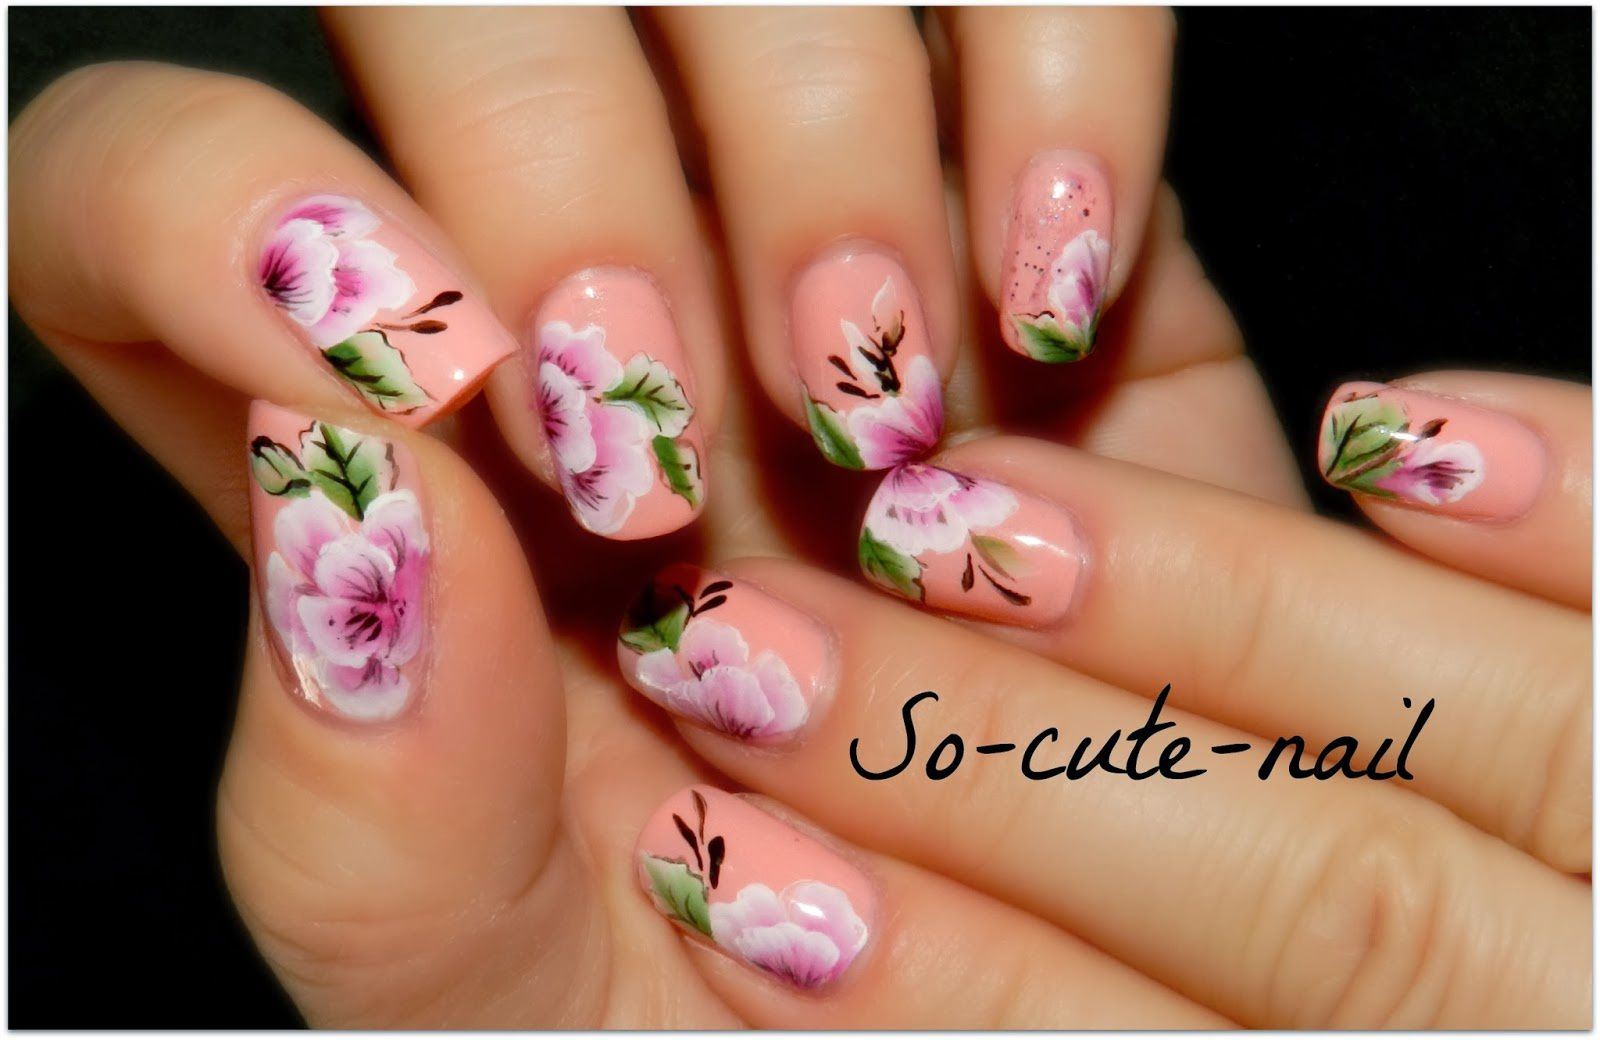 So Cute Nail et son One Stroke ! ( http://so-cute-nail.blogspot.fr/ )